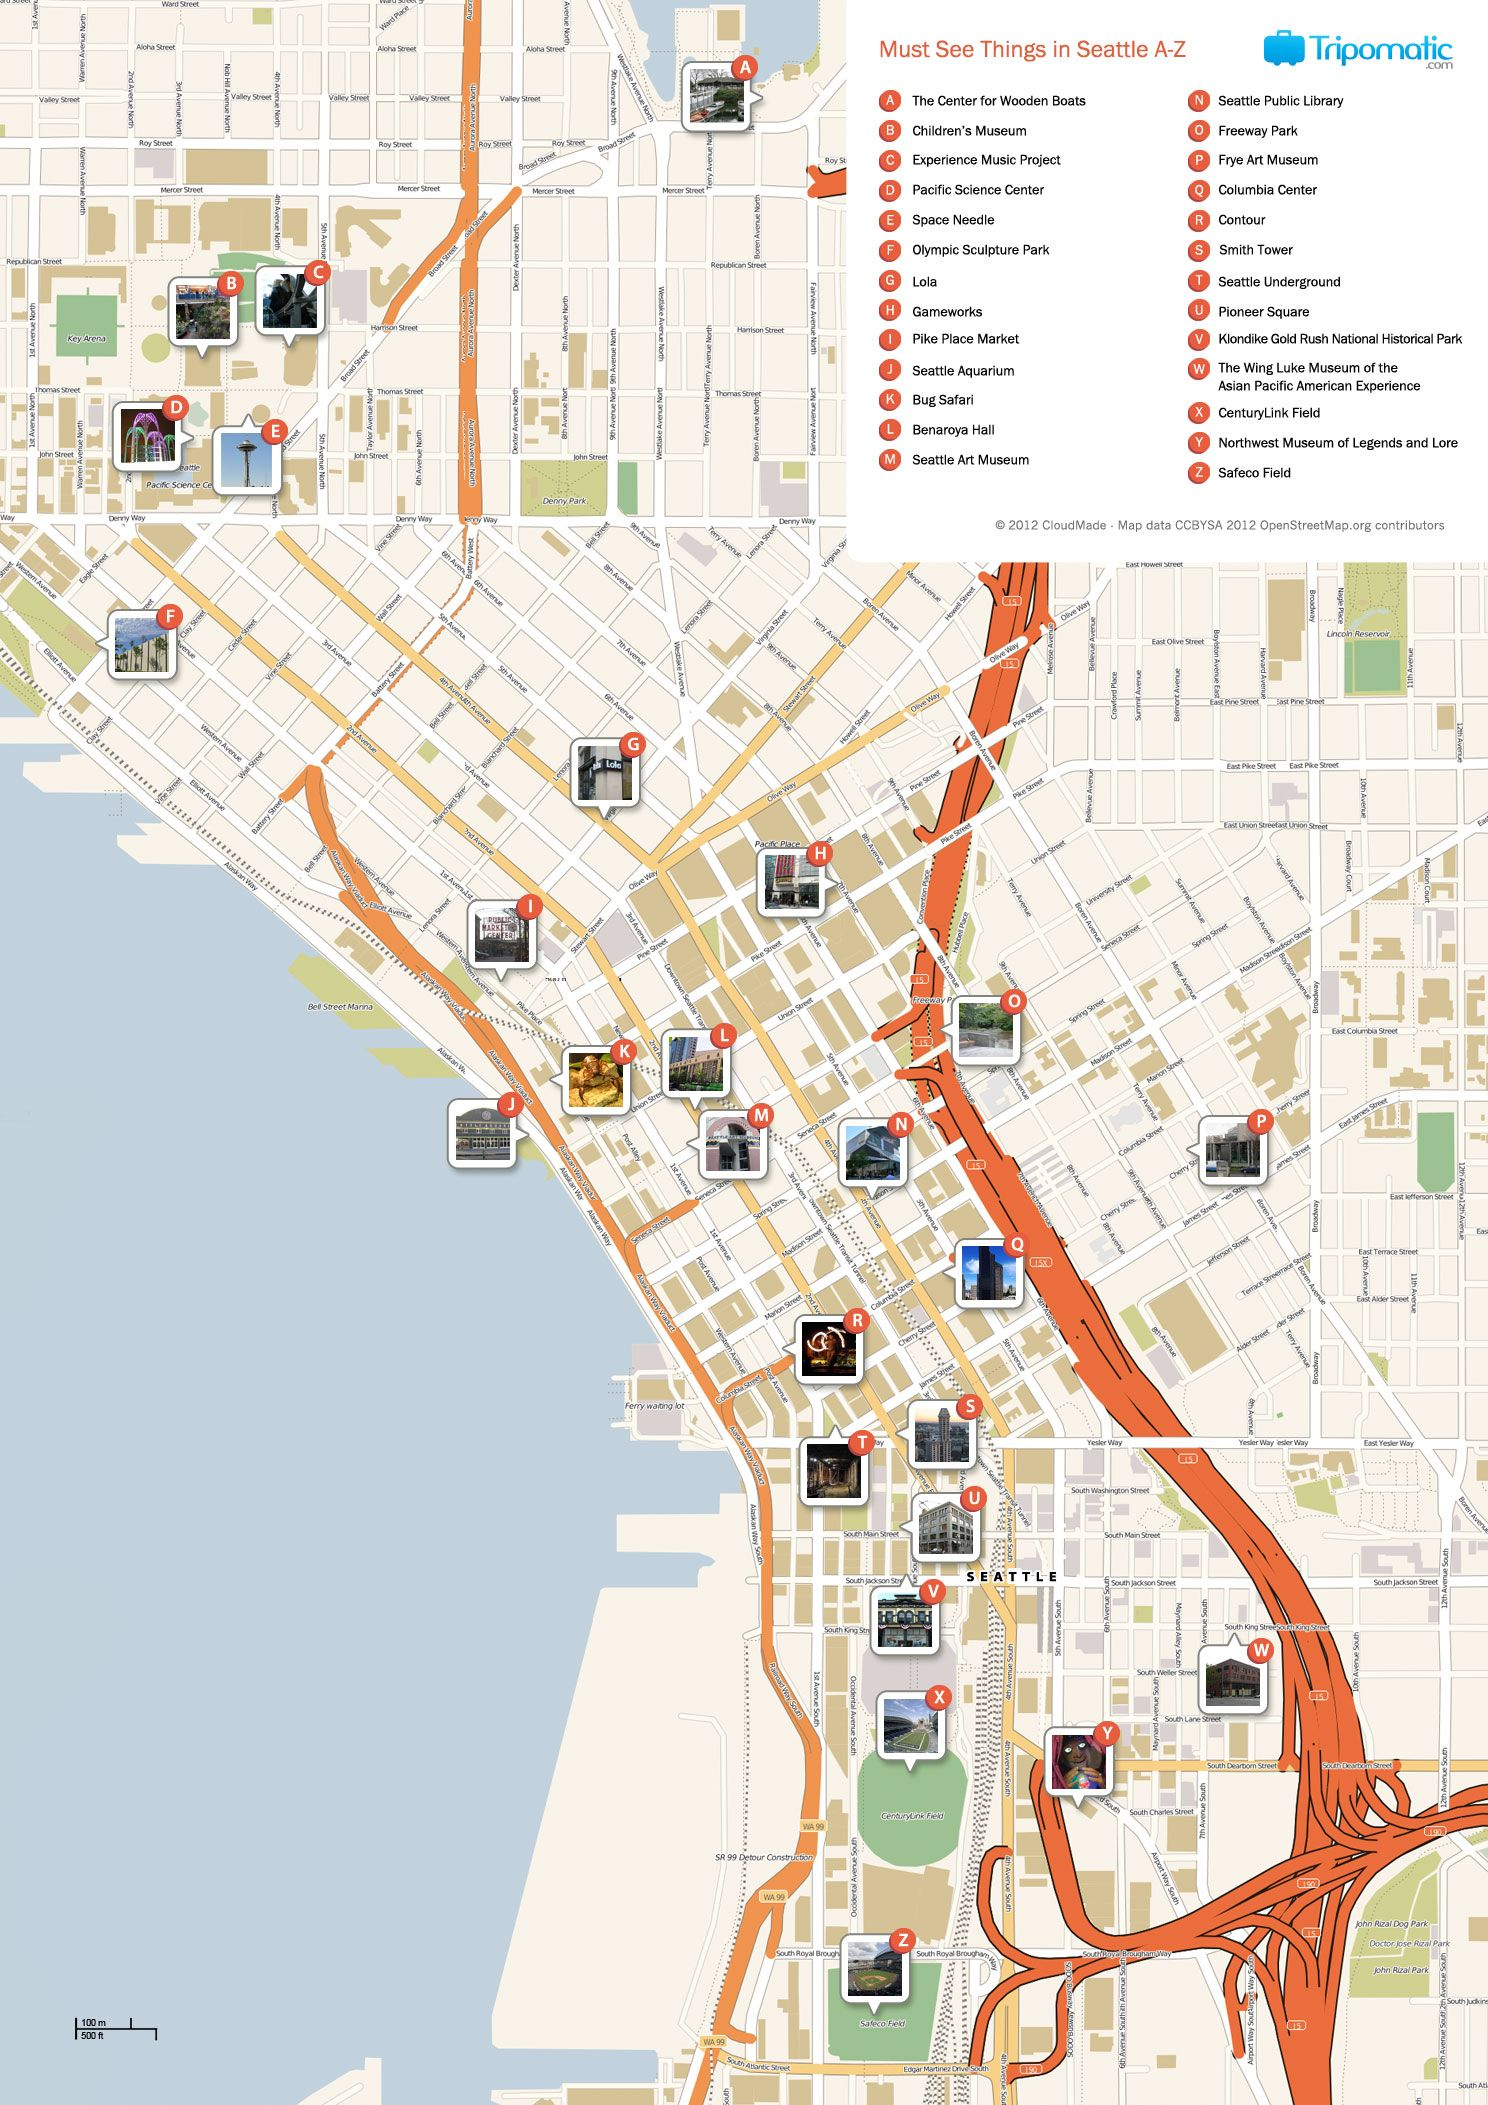 Washington State Map Seattle.Seattle Printable Tourist Map Free Tourist Maps Pinterest